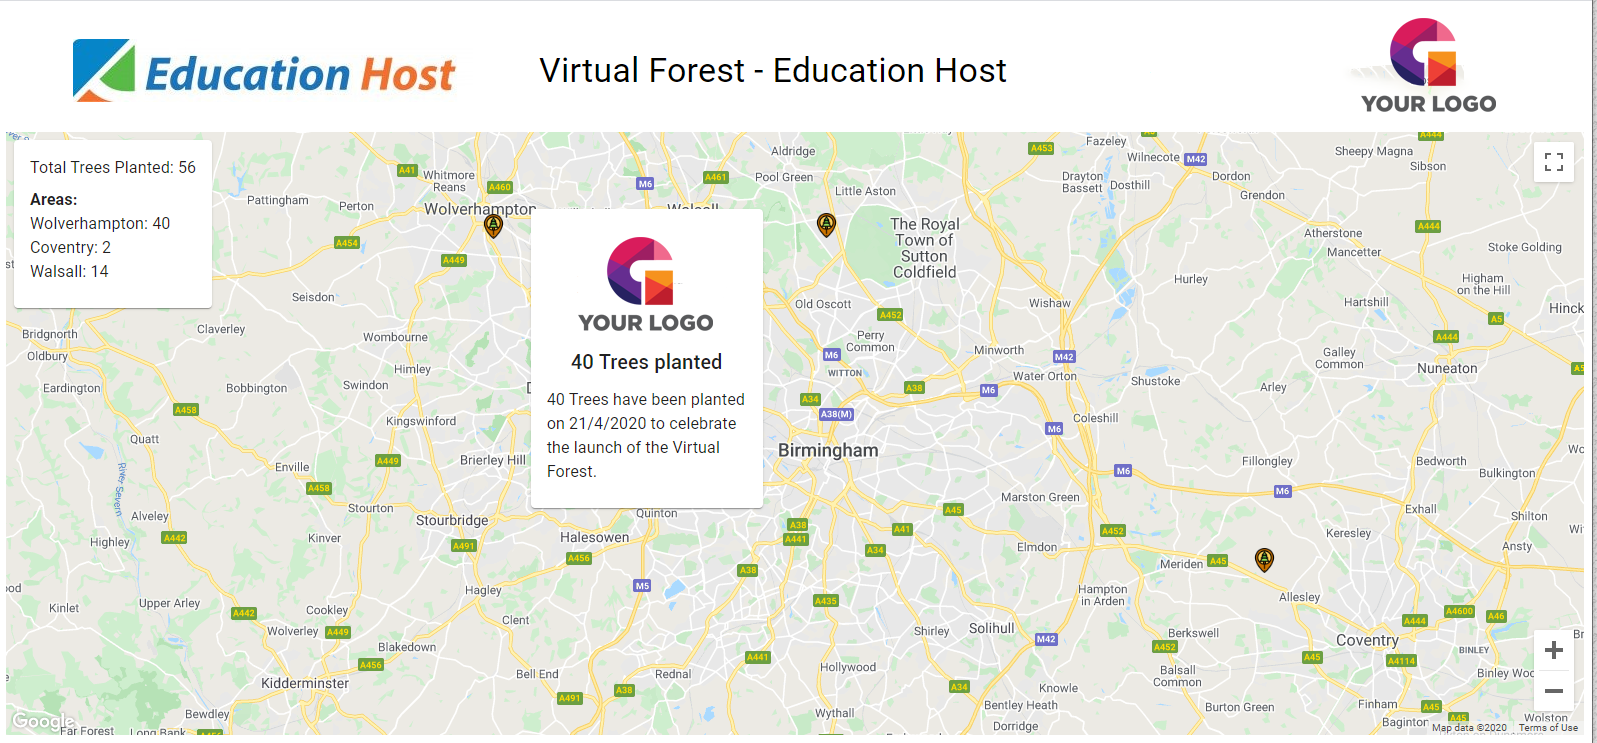 Virtual Forest - Education Host